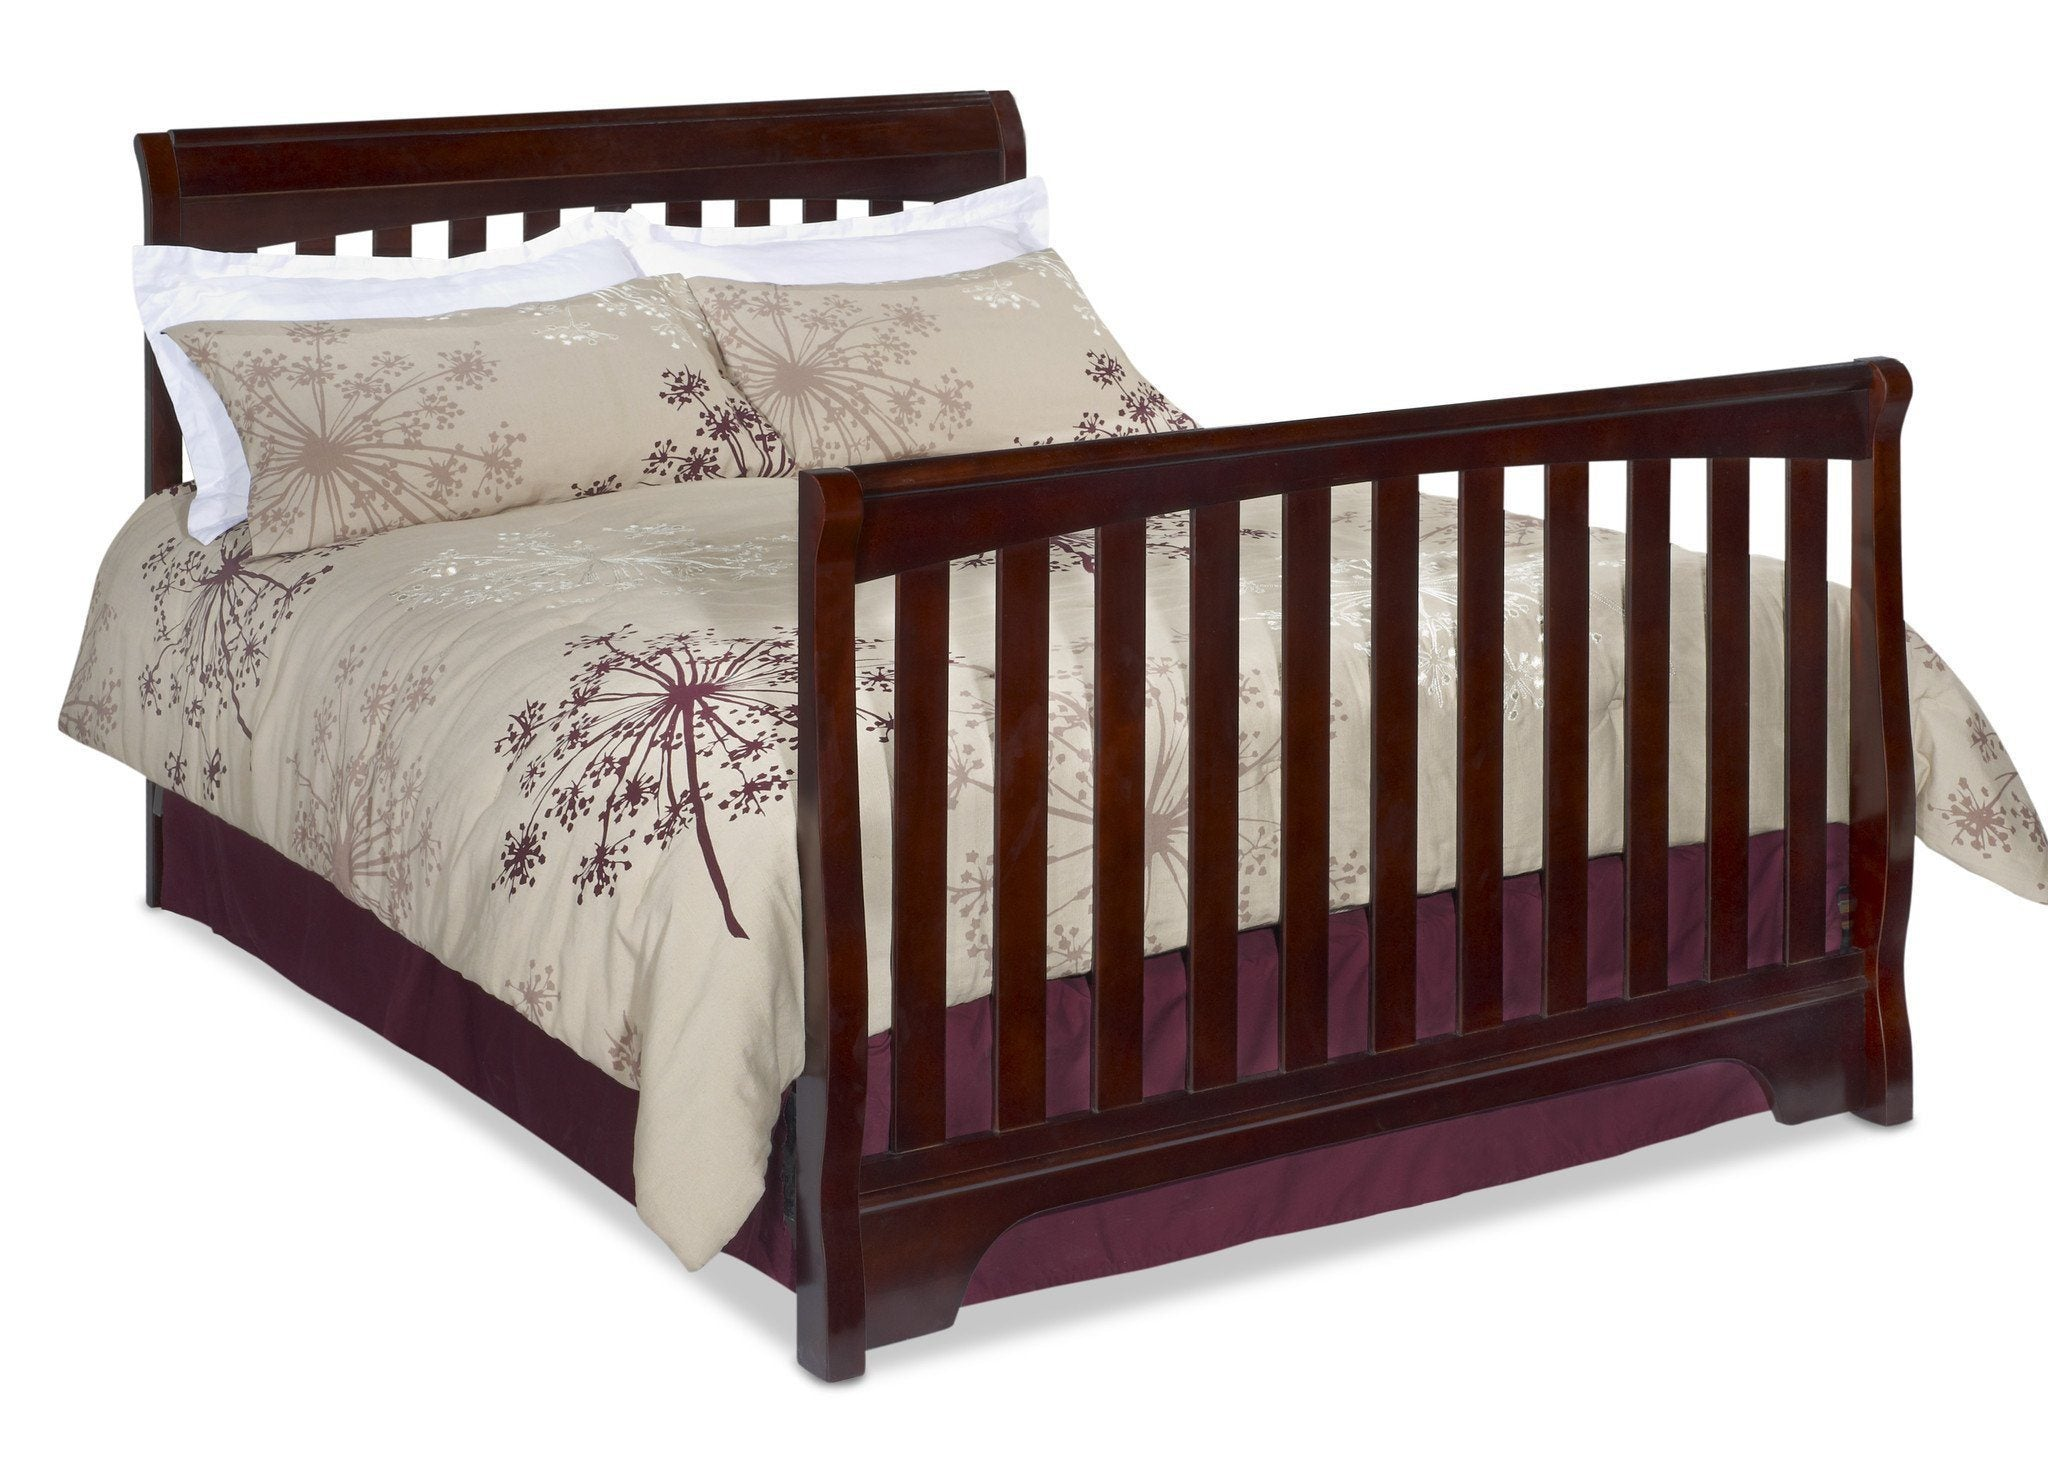 Delta Childrens Vintage Espresso (616) Eclipse 4-in-1 Full Bed Conversion Right View d4d